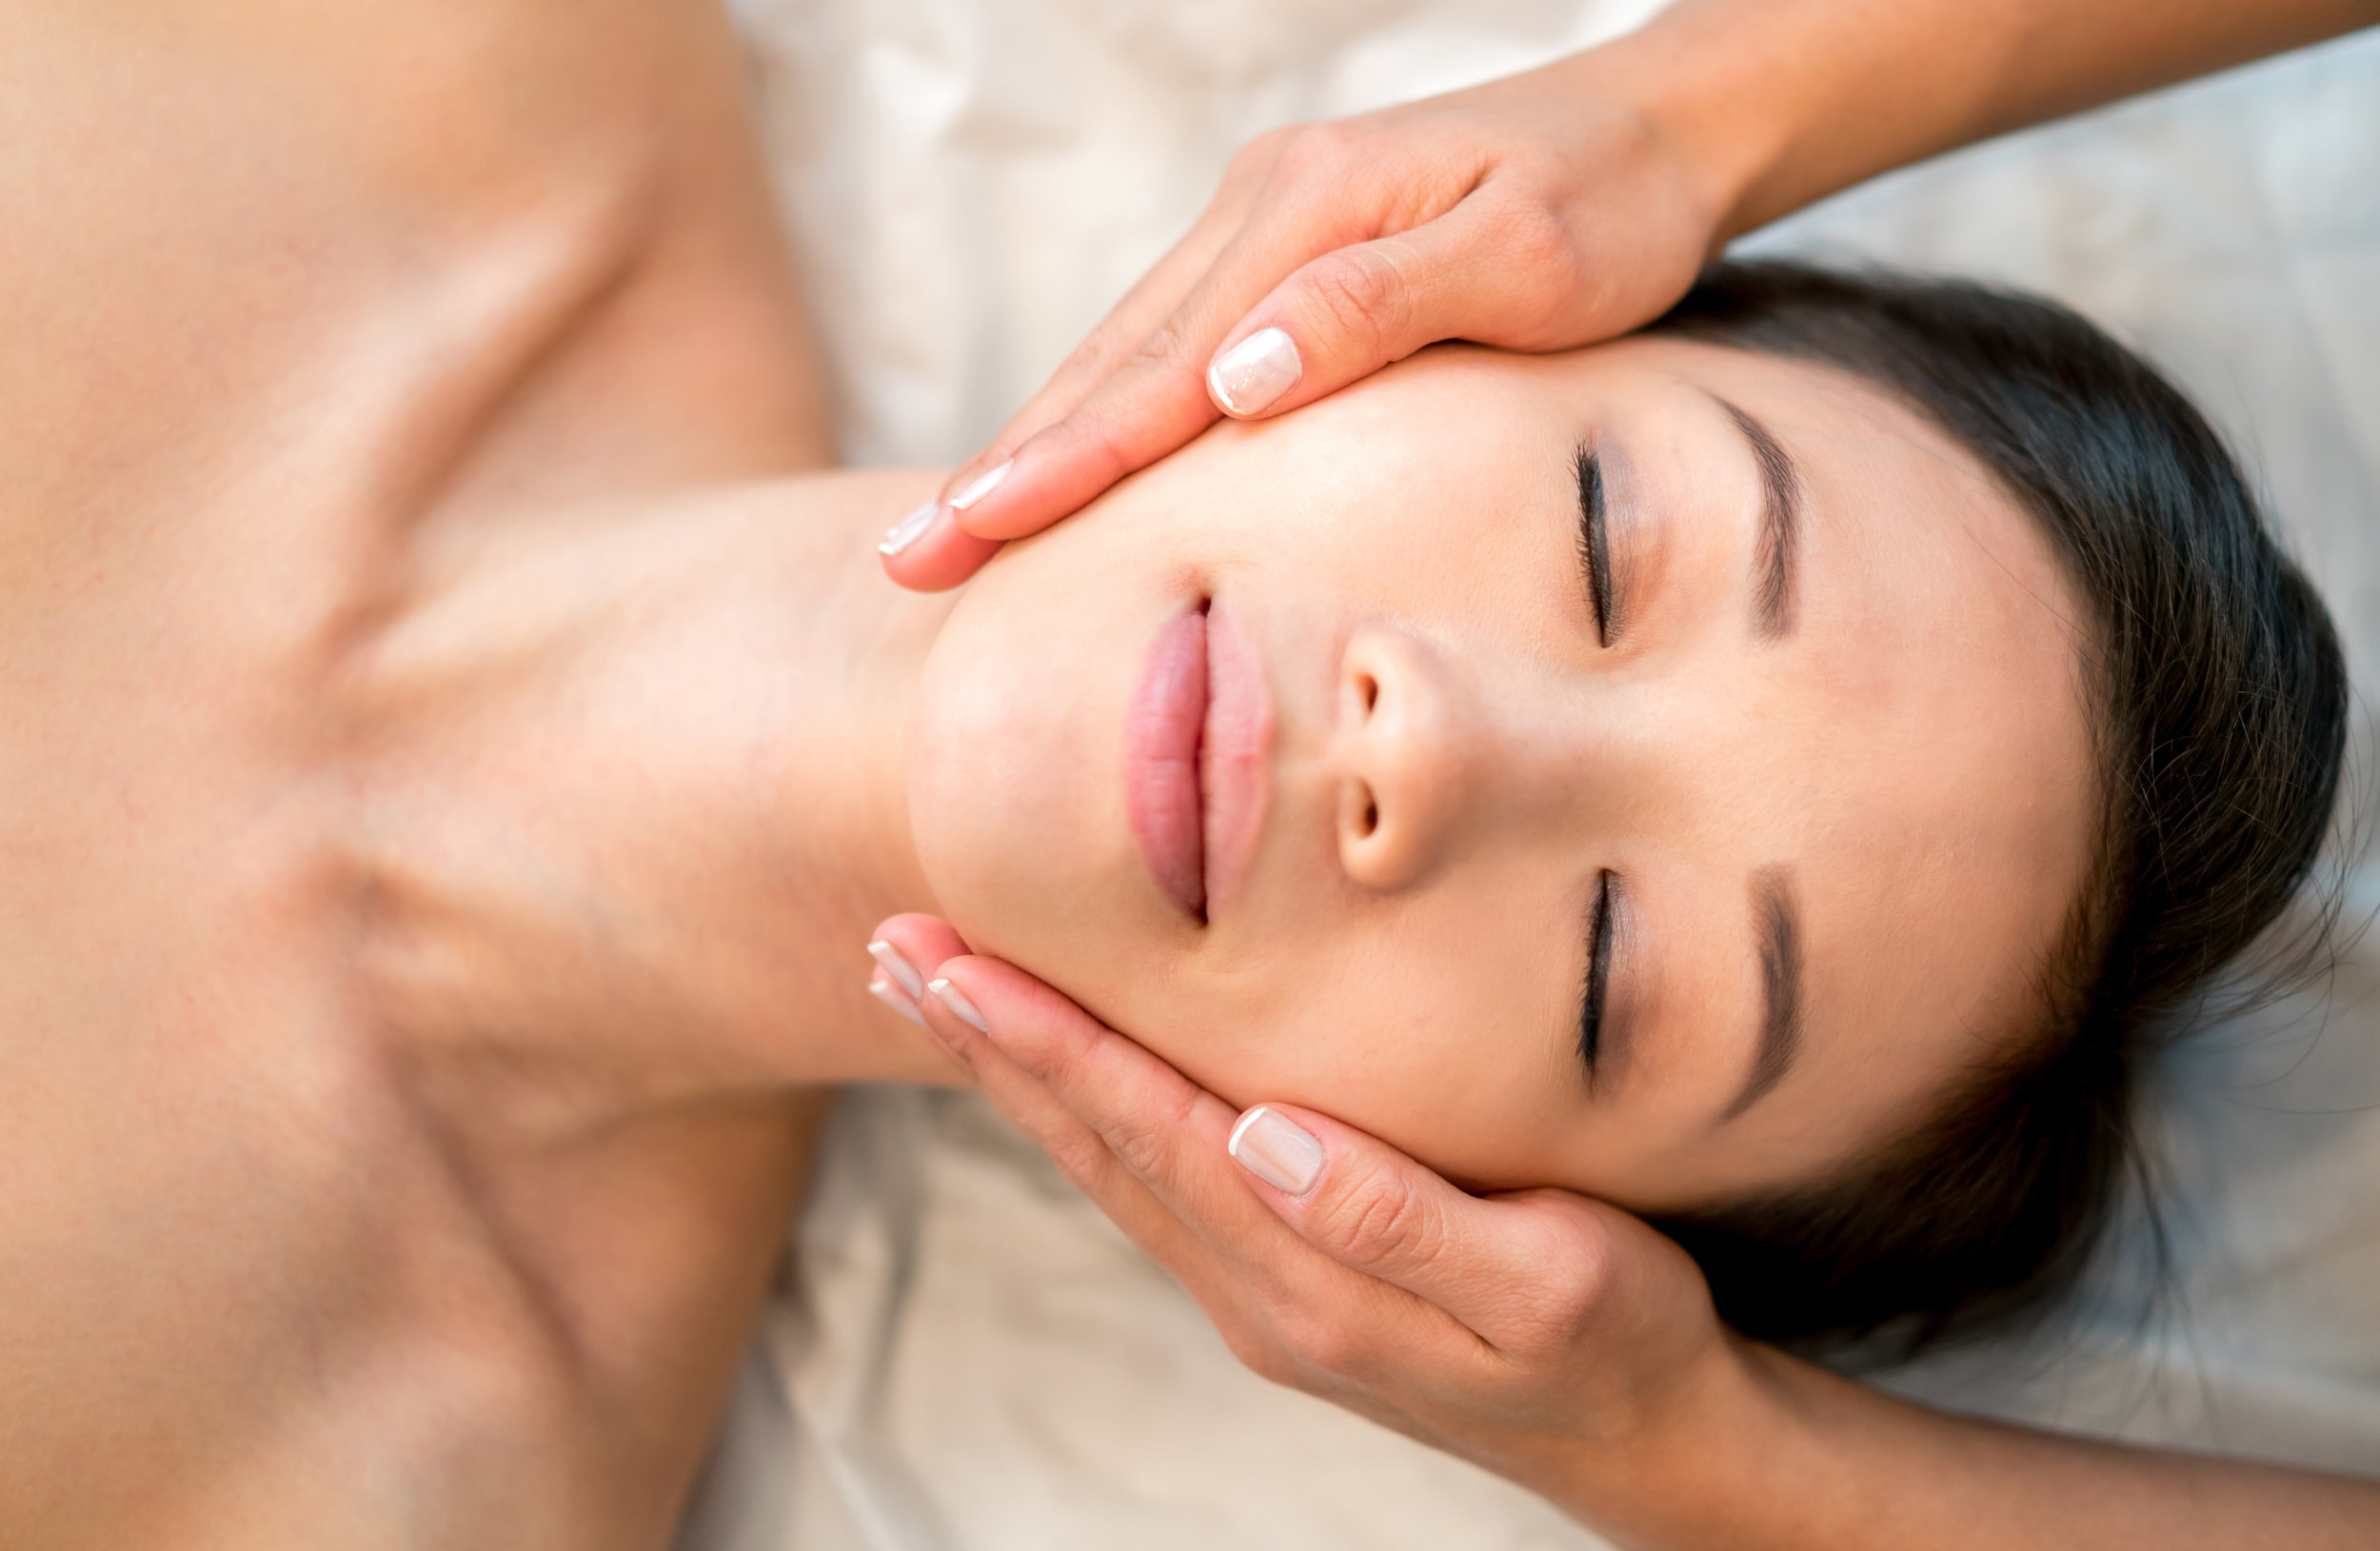 Pure Skin Spa Facials + Skin Treatments - 2 Hr Massage and Facial Package - $89.99